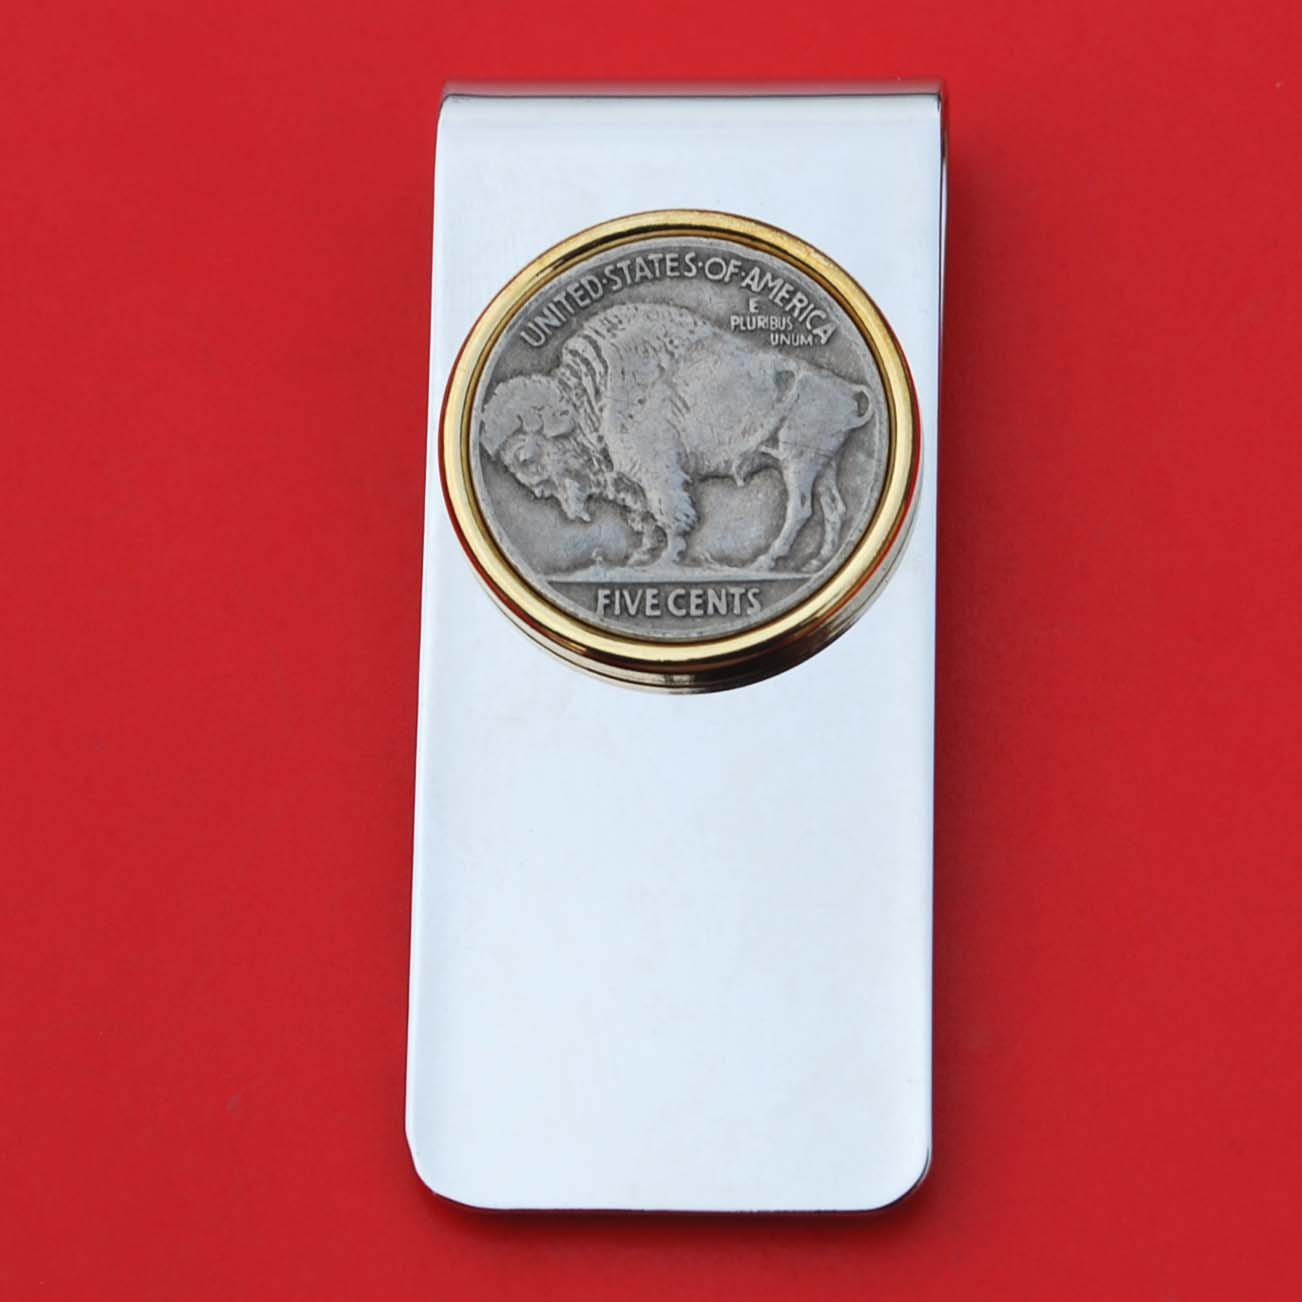 US 1913 ~ 1938 Indian Head Buffalo Nickel 5 Cent Coin Solid Brass Gold Silver Two Tone Money Clip New - High Quality